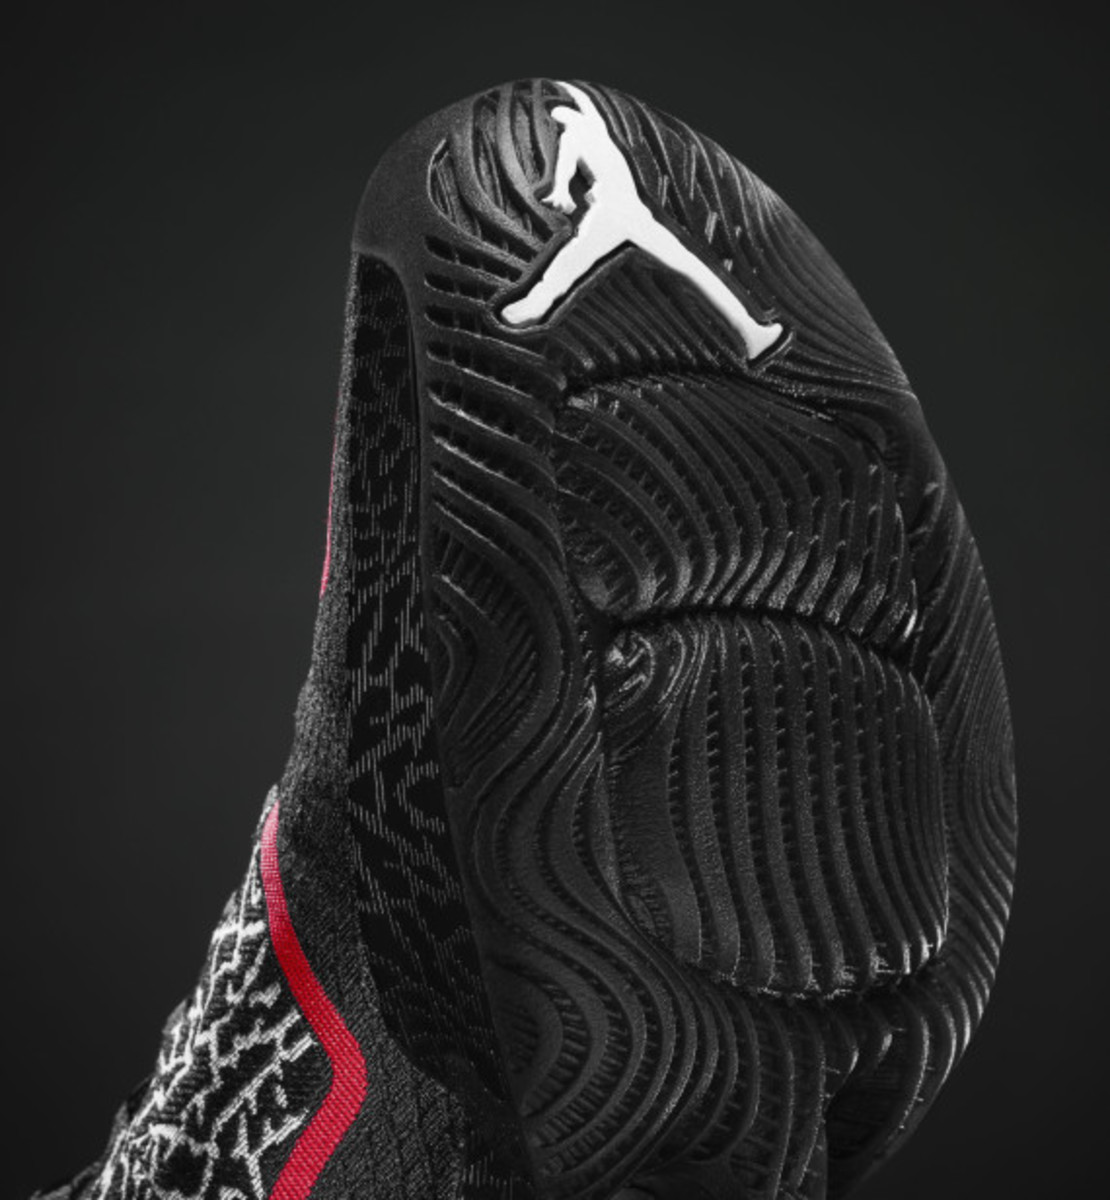 Air Jordan XX9 with First-Ever Performance Woven Upper | Officially Unveiled - 11